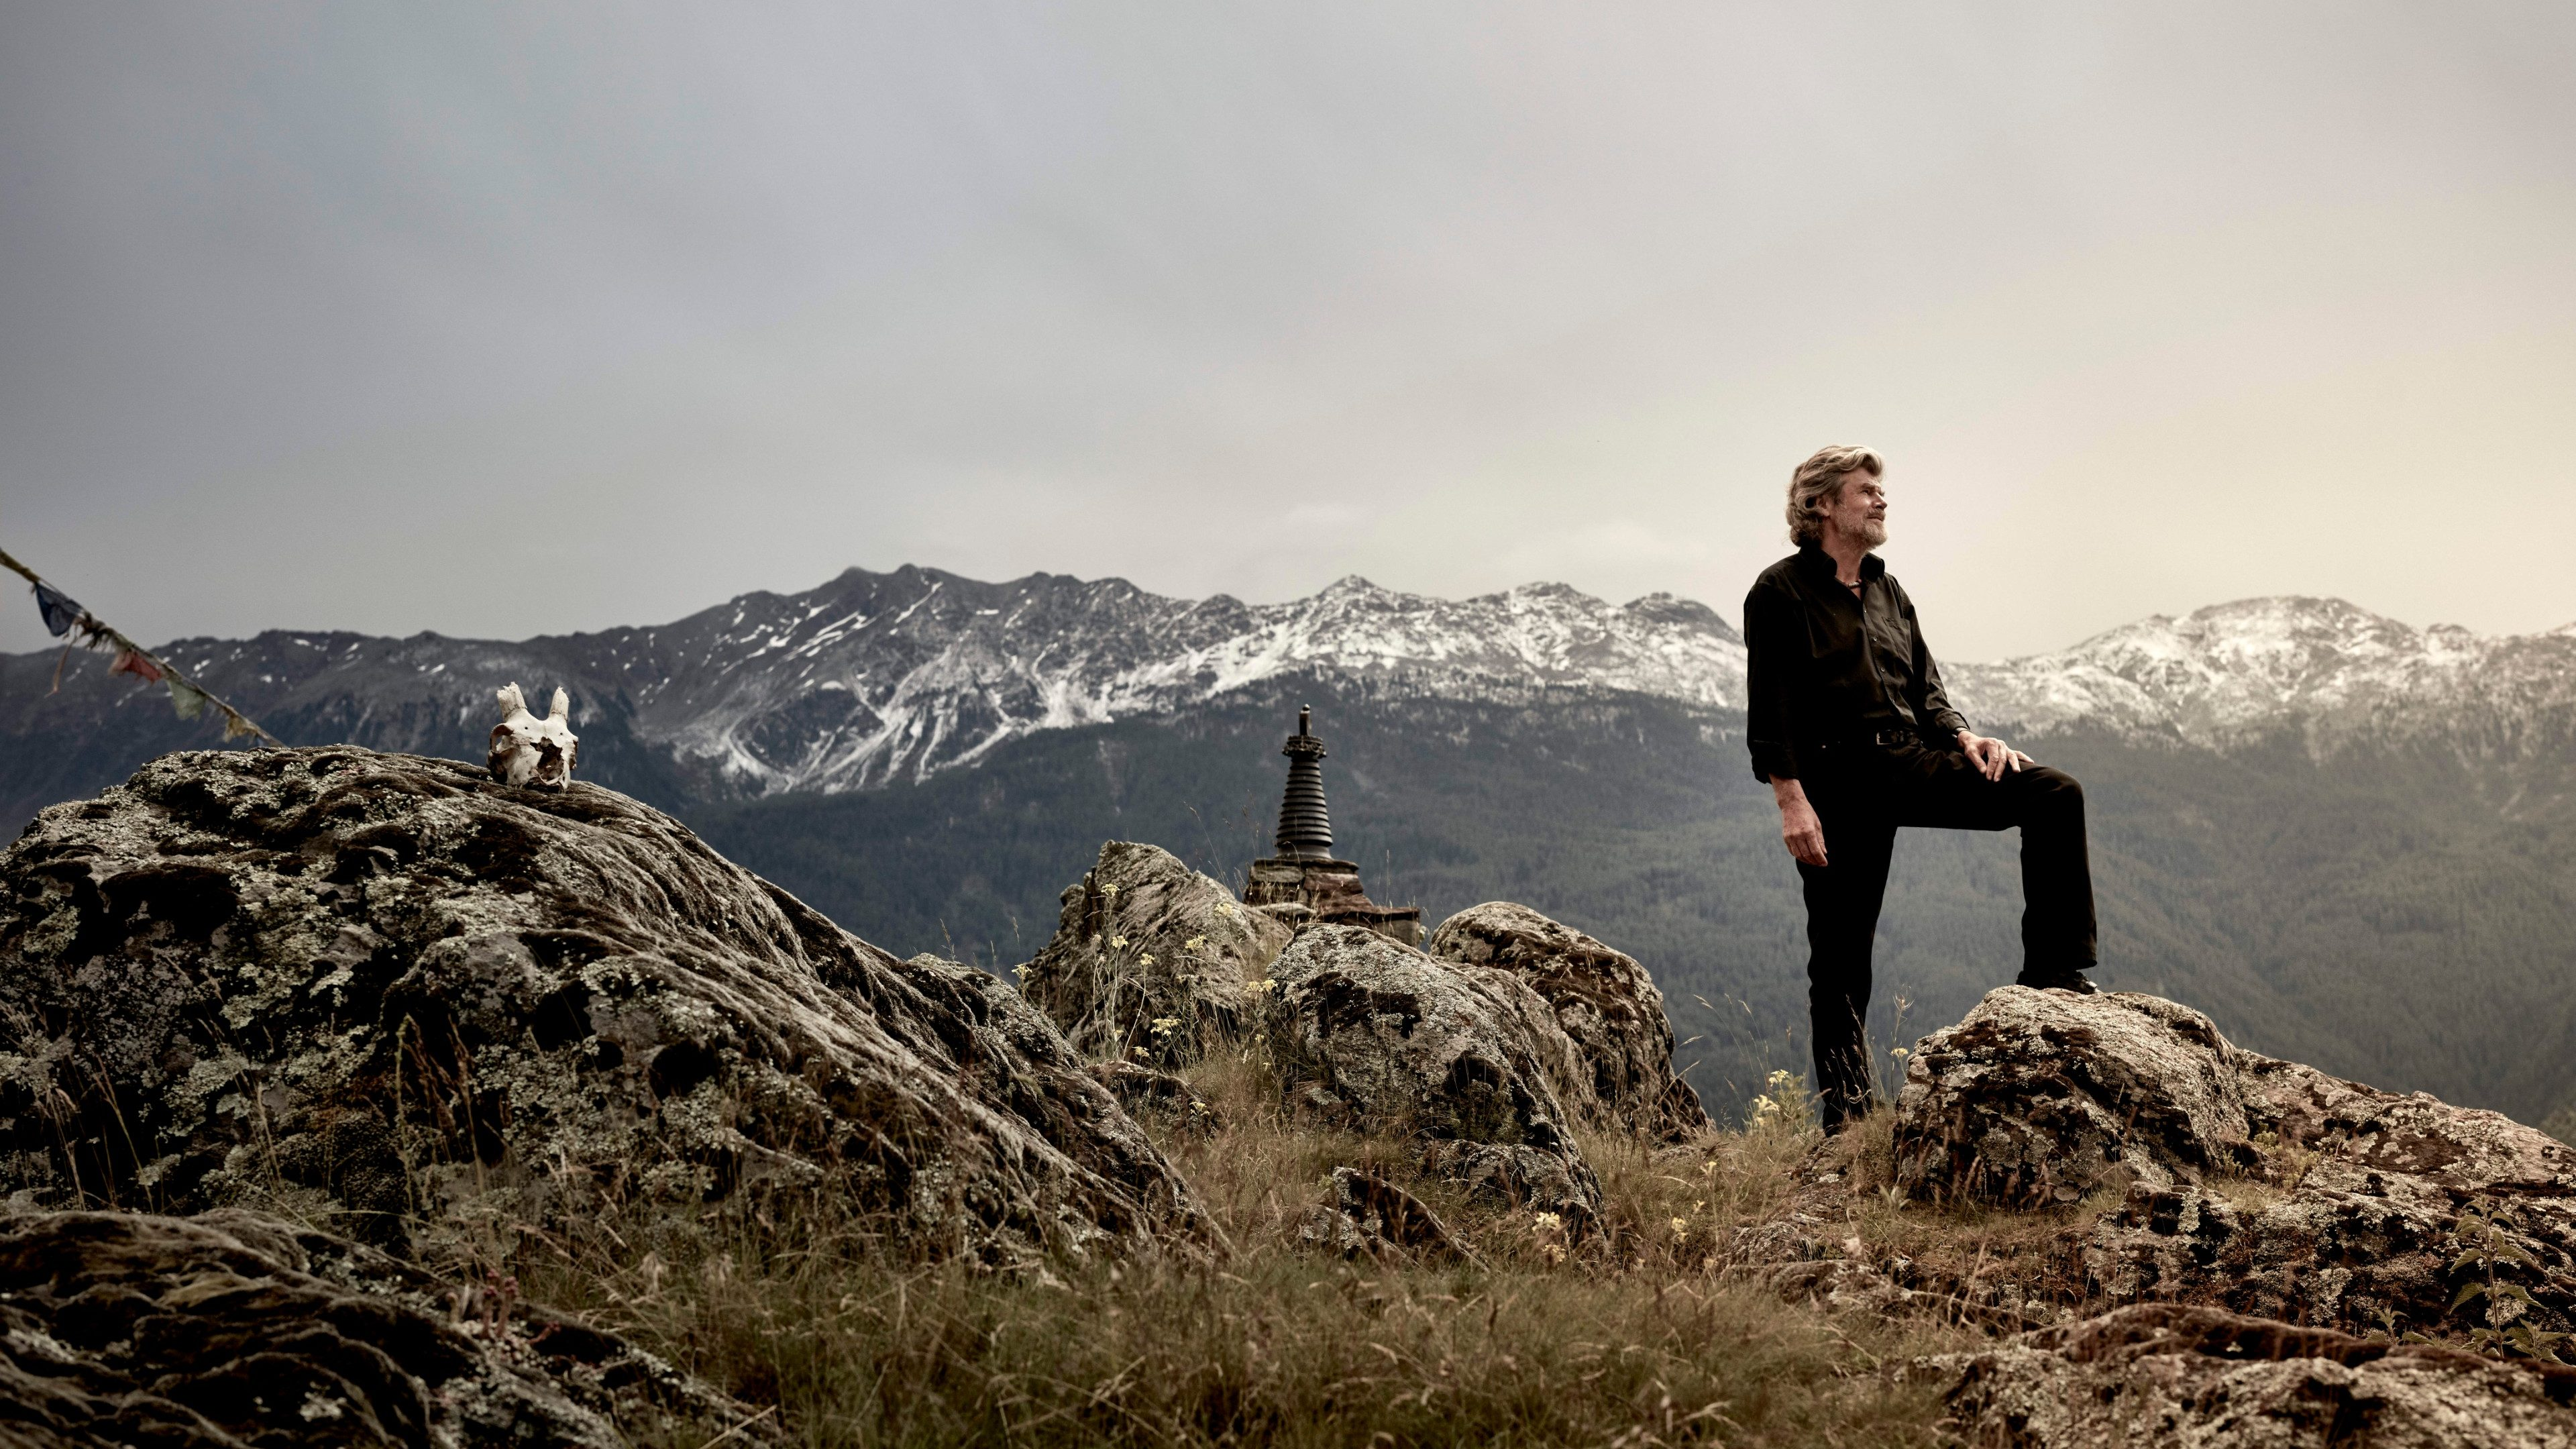 Download von www.picturedesk.com am 27.12.2016 (10:43). .*** EXKLUSIV *** Extrembergsteiger Reinhold Messner ; Location : Schloss Juval in Bozen - 20160622_PD23748 - Rechteinfo: Exklusives Bildmaterial - Achtung Sonderkonditionen (KEYSTONE/APA/Ehm Ian)